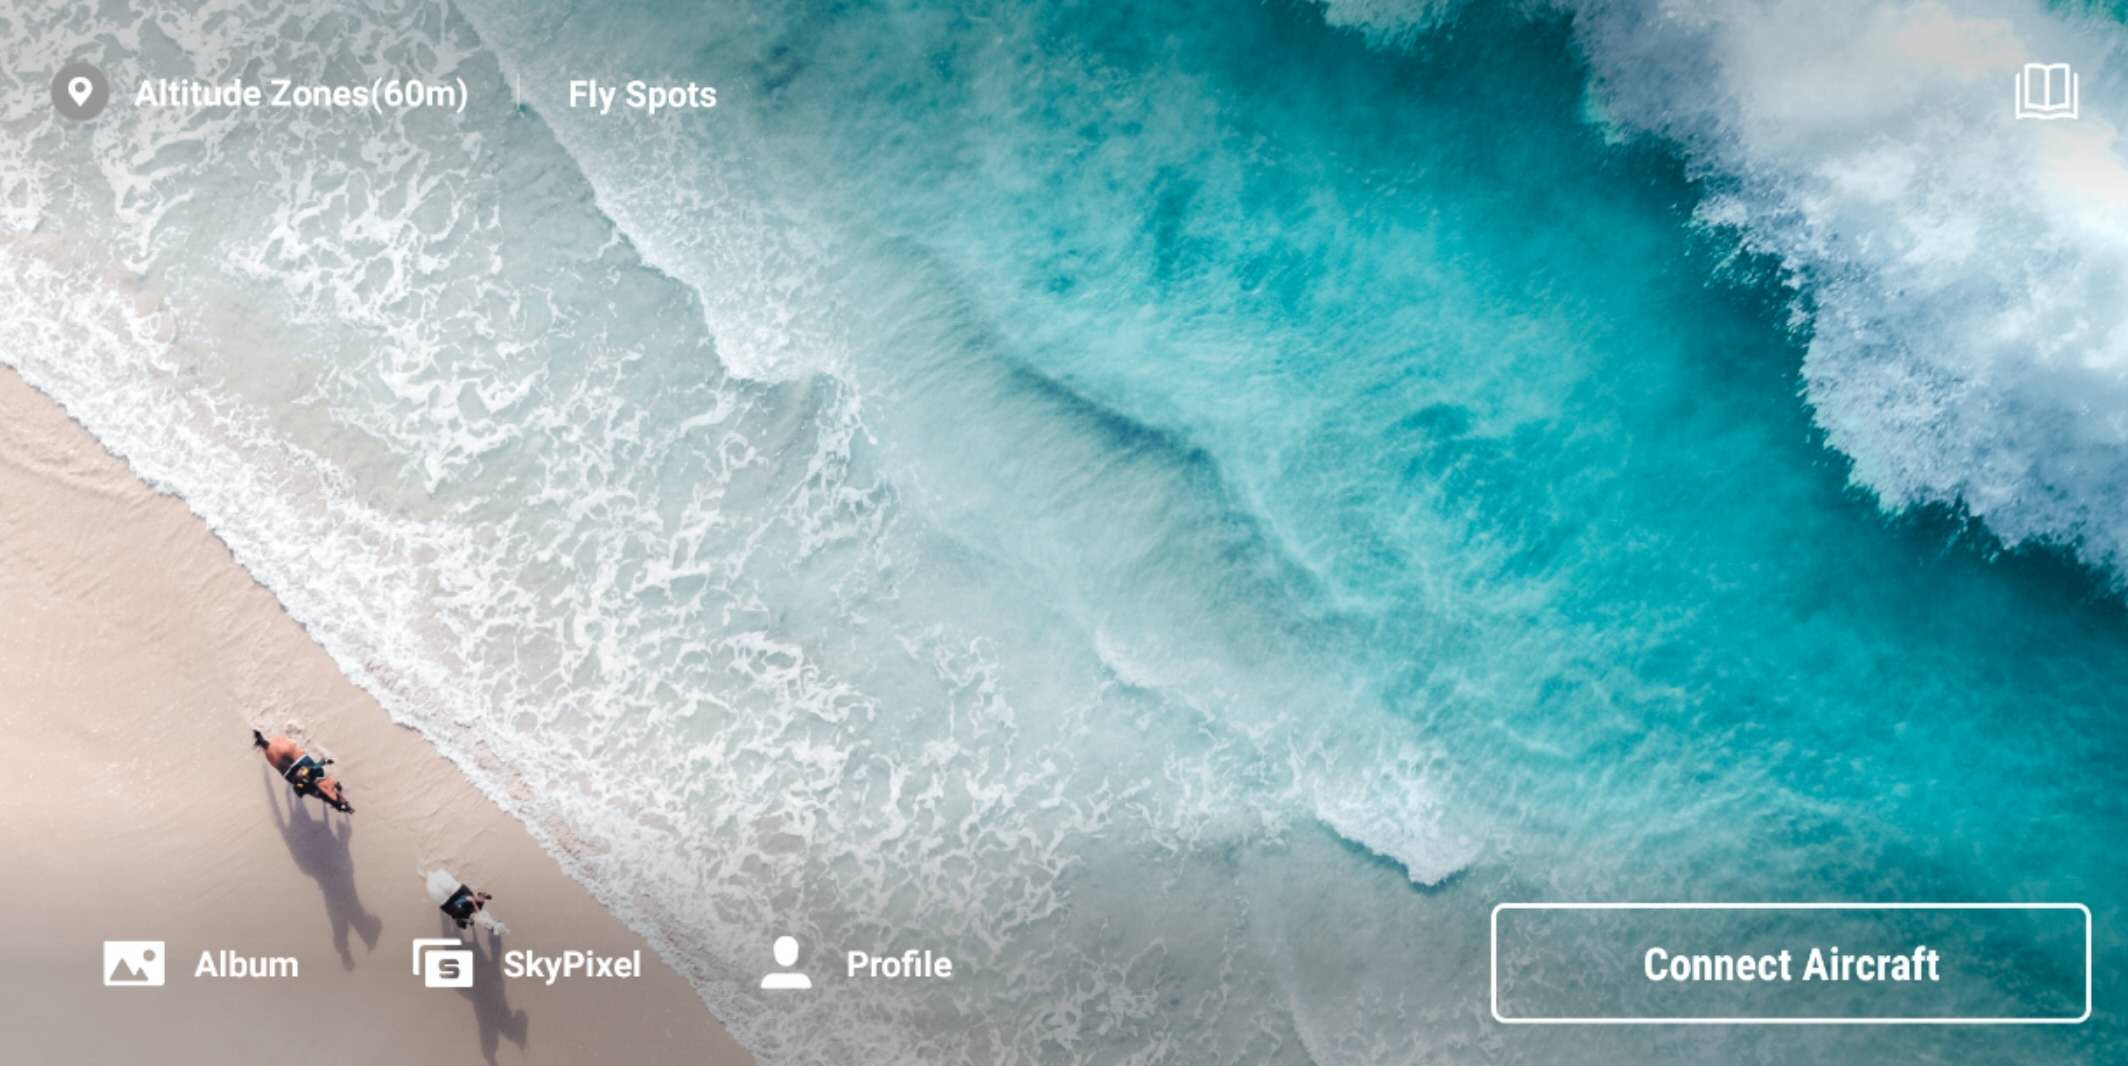 The home screen of DJI Fly app